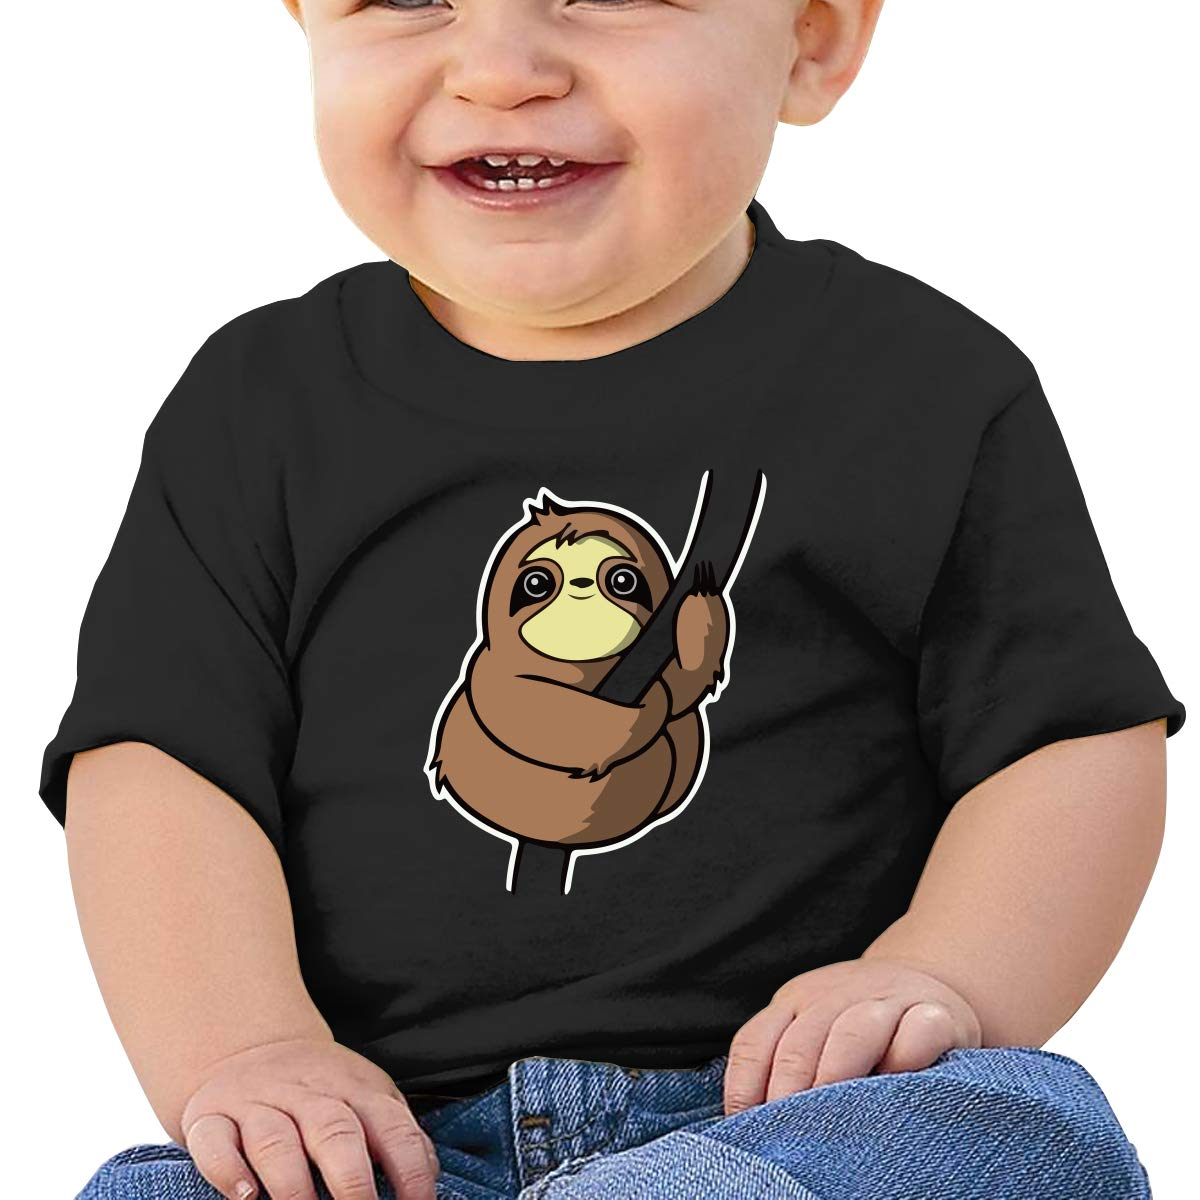 Climbing Sloth Toddler Short-Sleeve Tee for Boy Girl Infant Kids T-Shirt On Newborn 6-18 Months